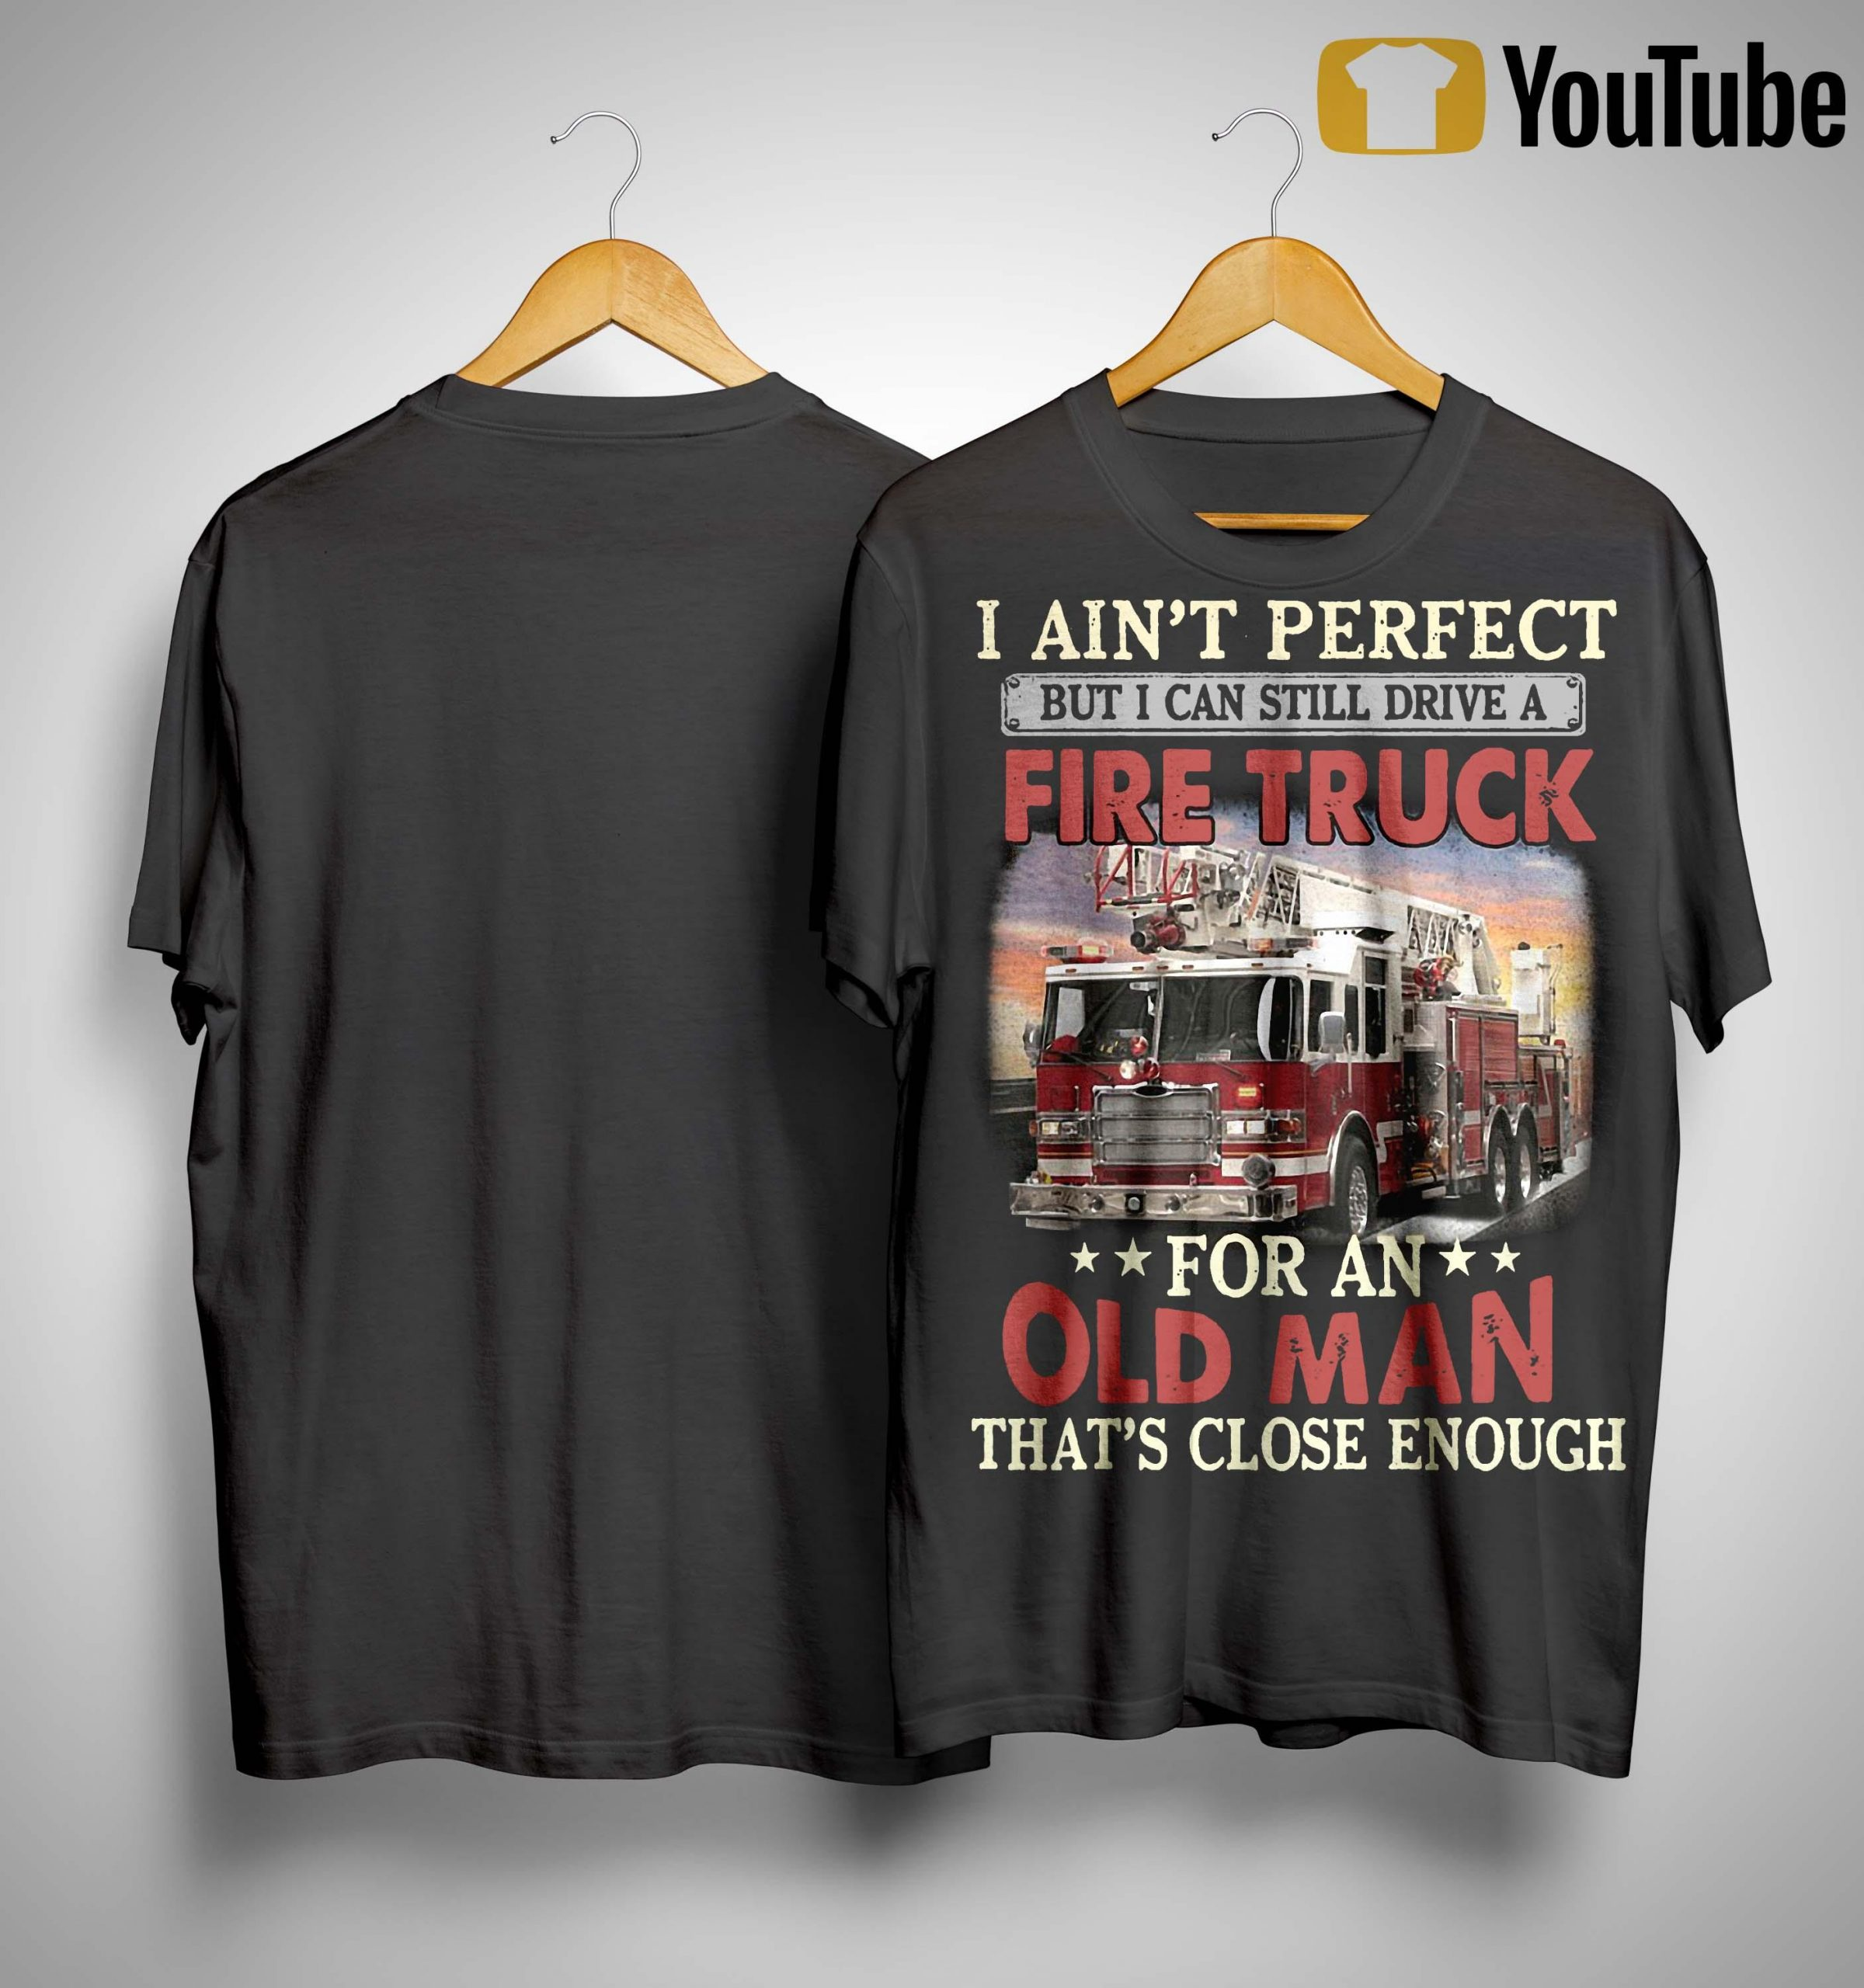 I Ain't Perfect But I Can Still Drive A Fire Truck For An Old Man Shirt